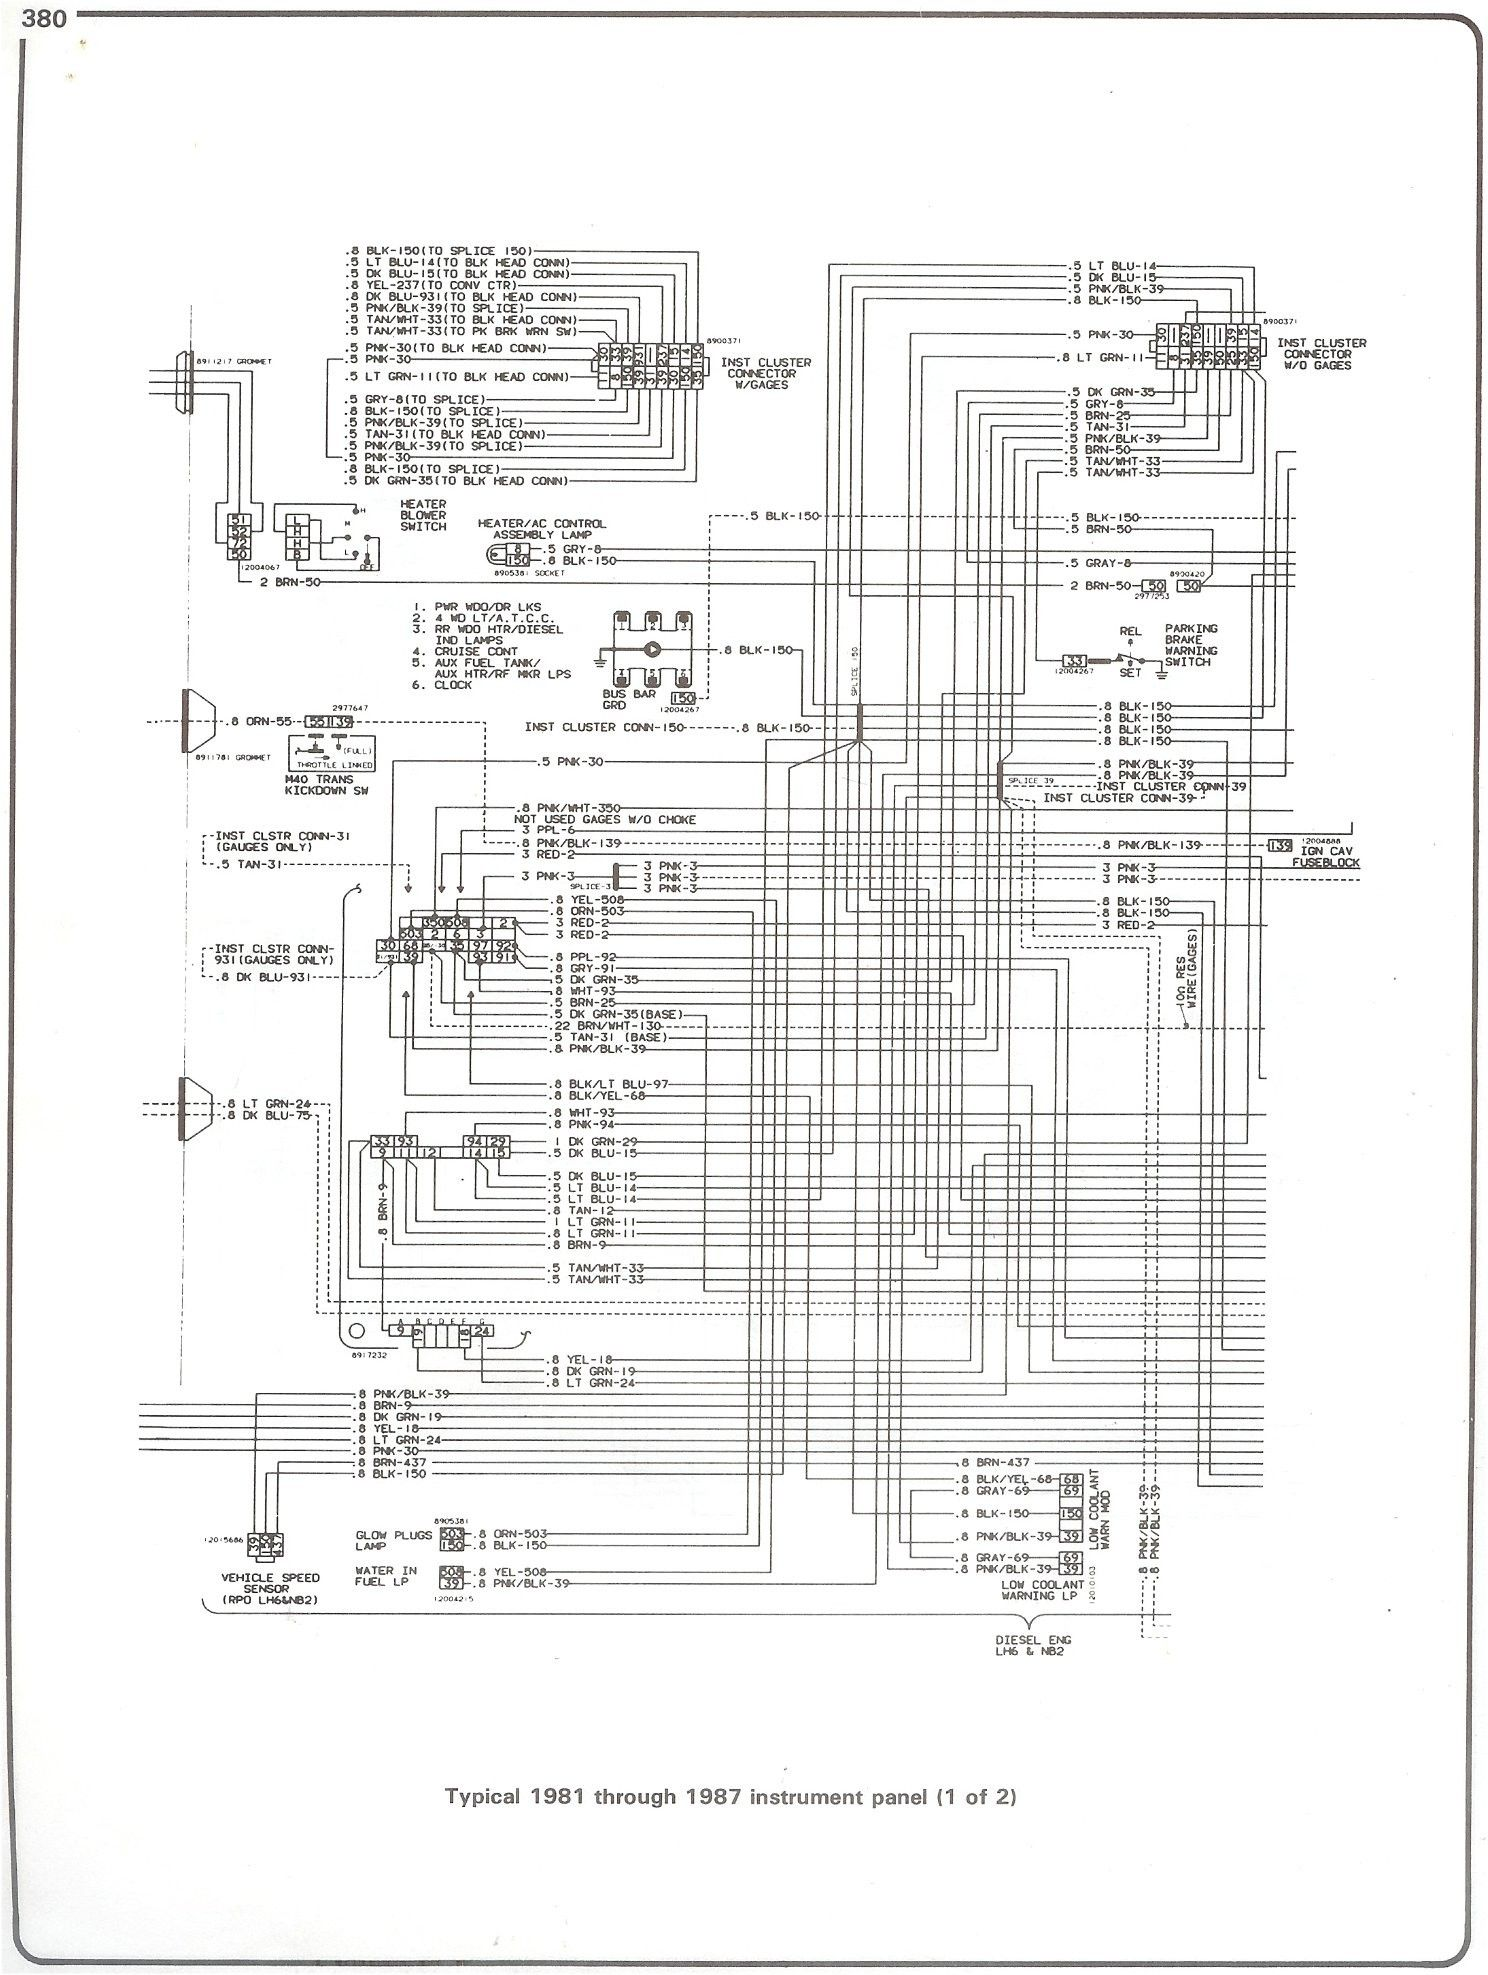 New Wiring Diagram Of Zen Car Diagram Diagramtemplate Diagramsample Chevy Trucks 1979 Chevy Truck 86 Chevy Truck